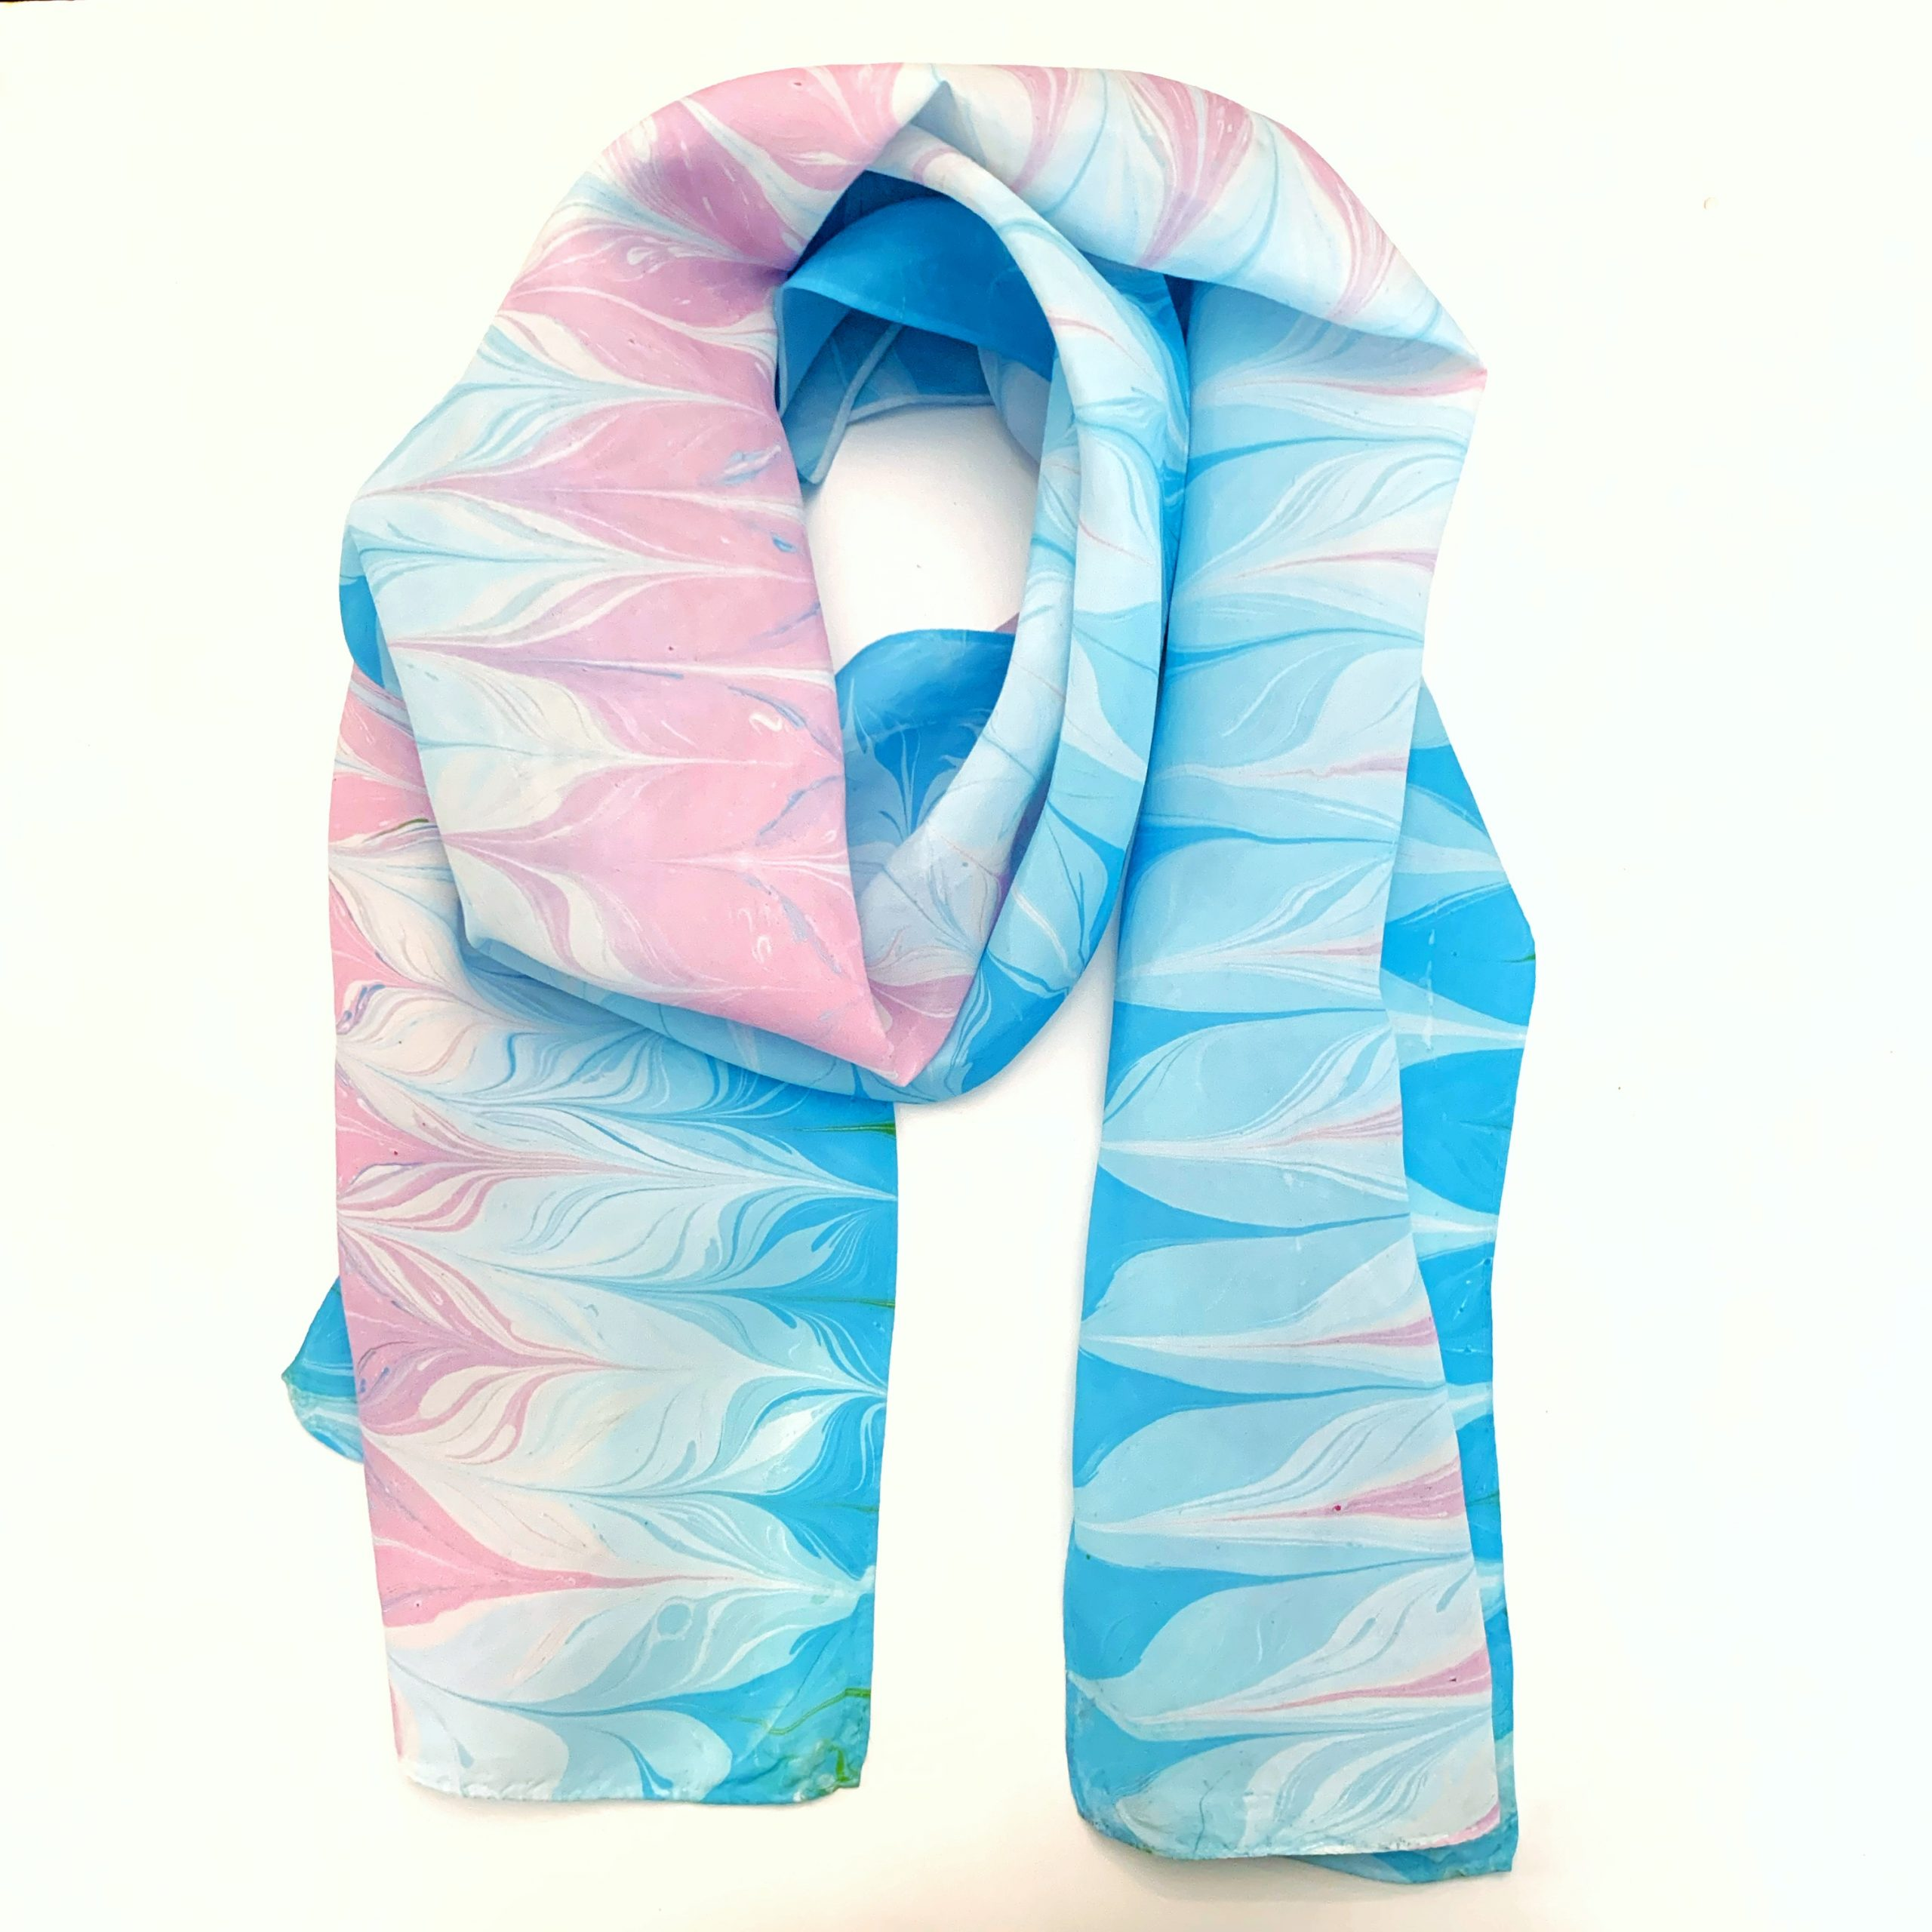 Pale Pink and blue Cotton Candy SCarf